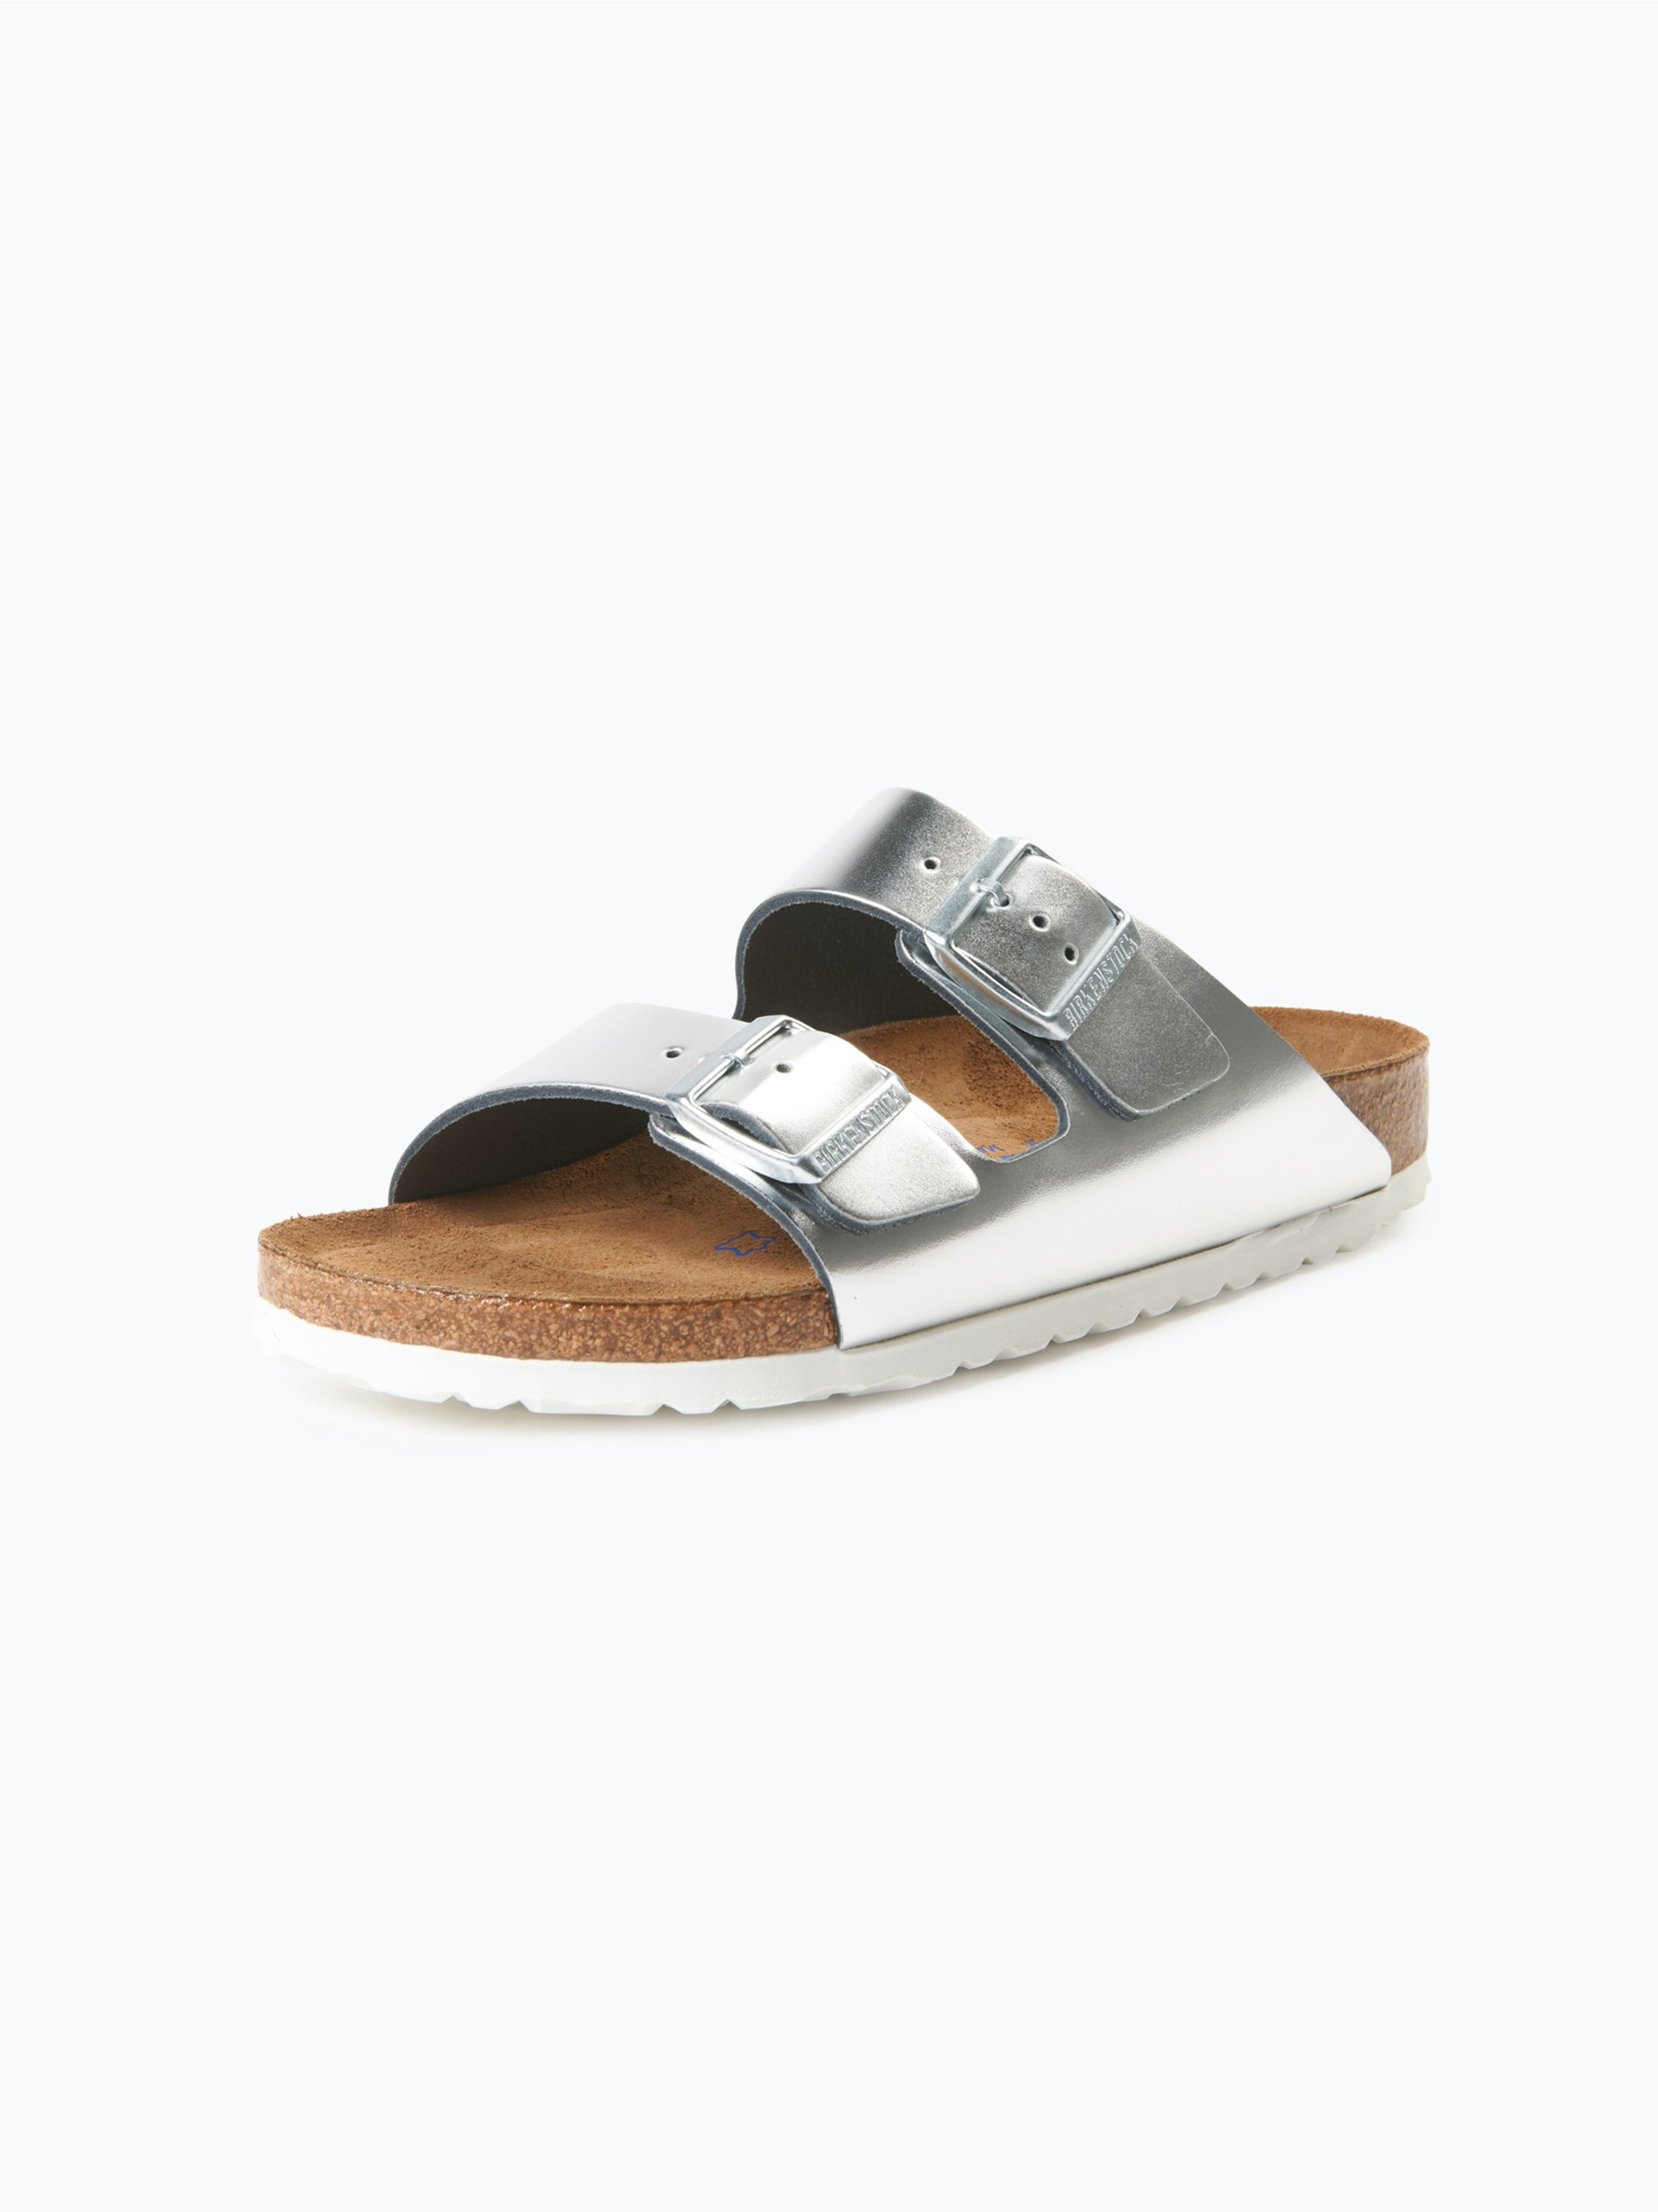 birkenstock damen sandalen aus leder silber uni online kaufen vangraaf com. Black Bedroom Furniture Sets. Home Design Ideas